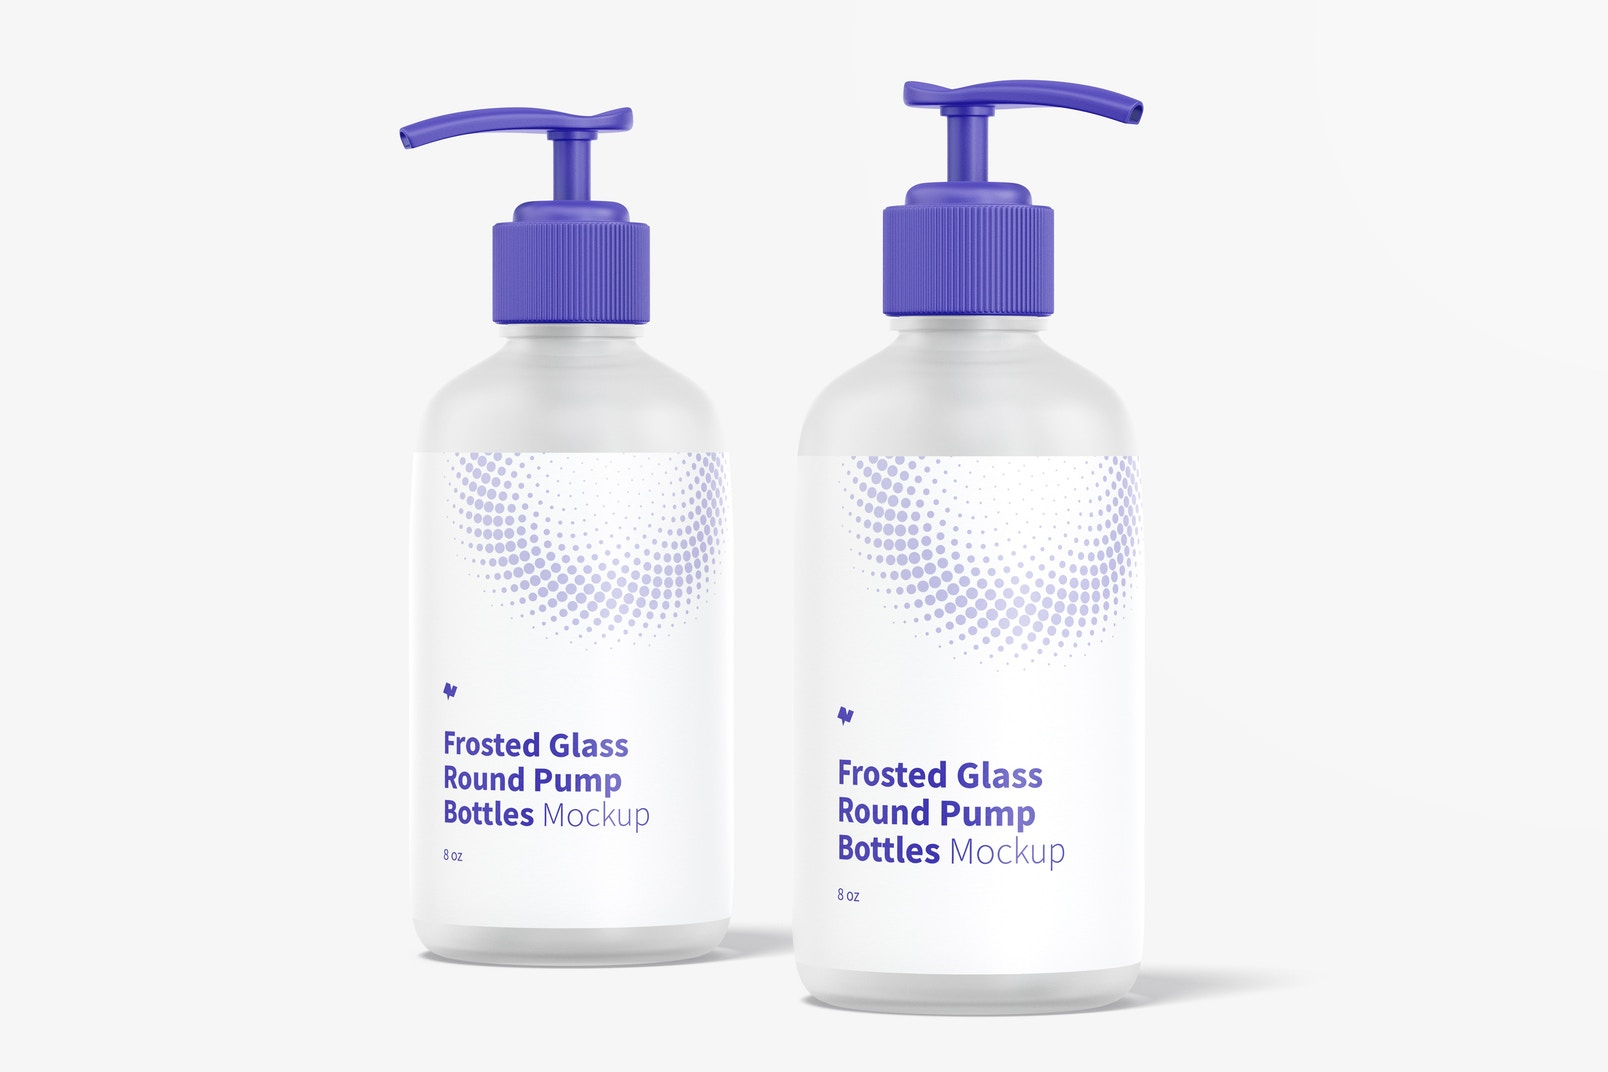 8 oz Frosted Glass Round Pump Bottles Mockup, Front View